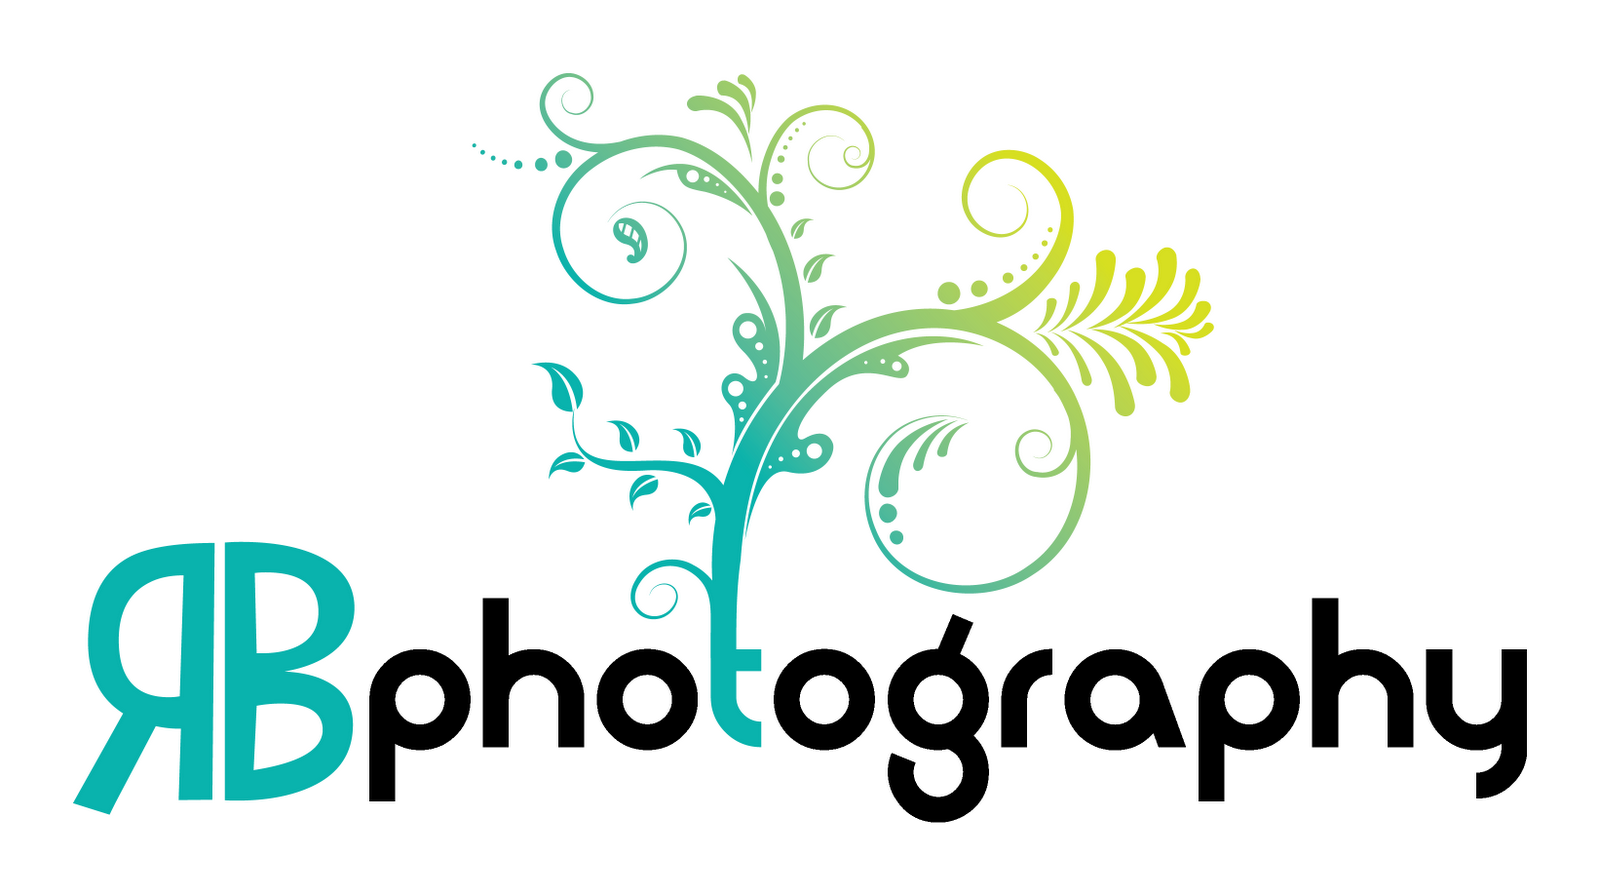 Rb photography Logos.